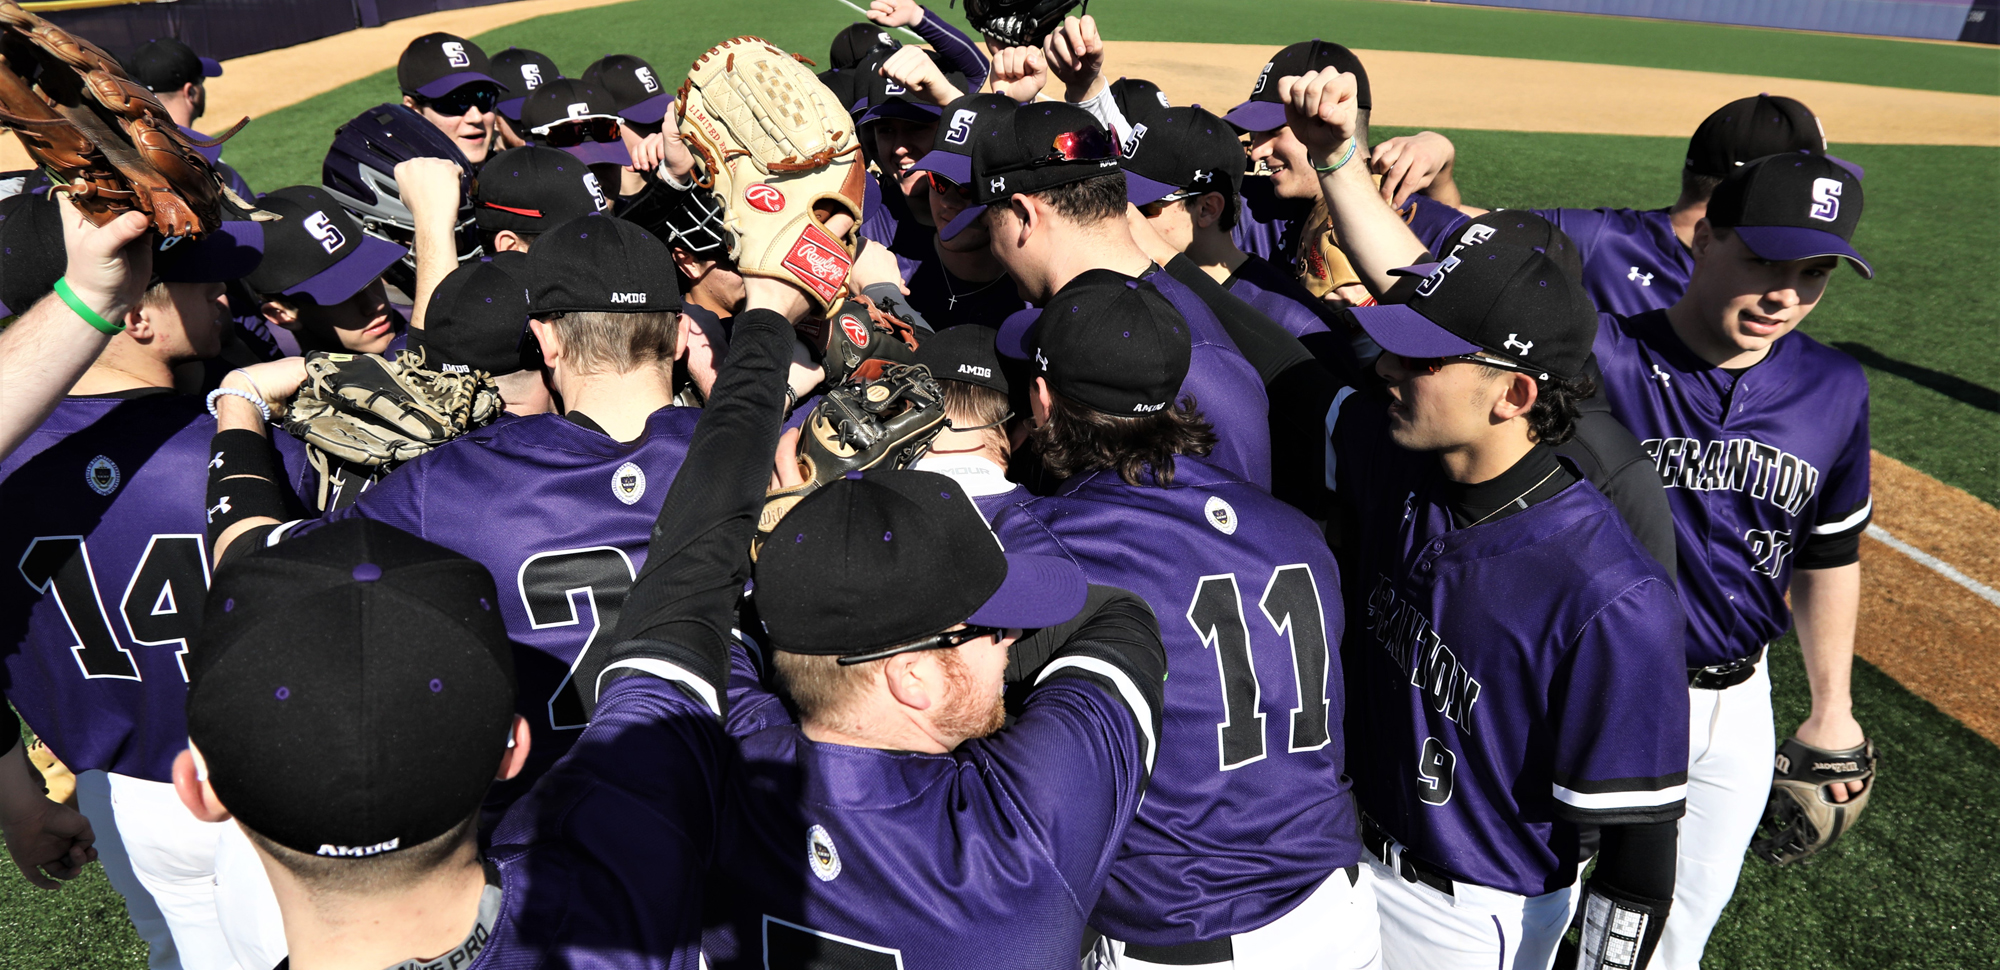 The University of Scranton baseball team featured six seniors that captured 60 victories in the last three plus seasons and made two Landmark Conference Playoff appearances. © Photo by Timothy R. Dougherty / doubleeaglephotography.com